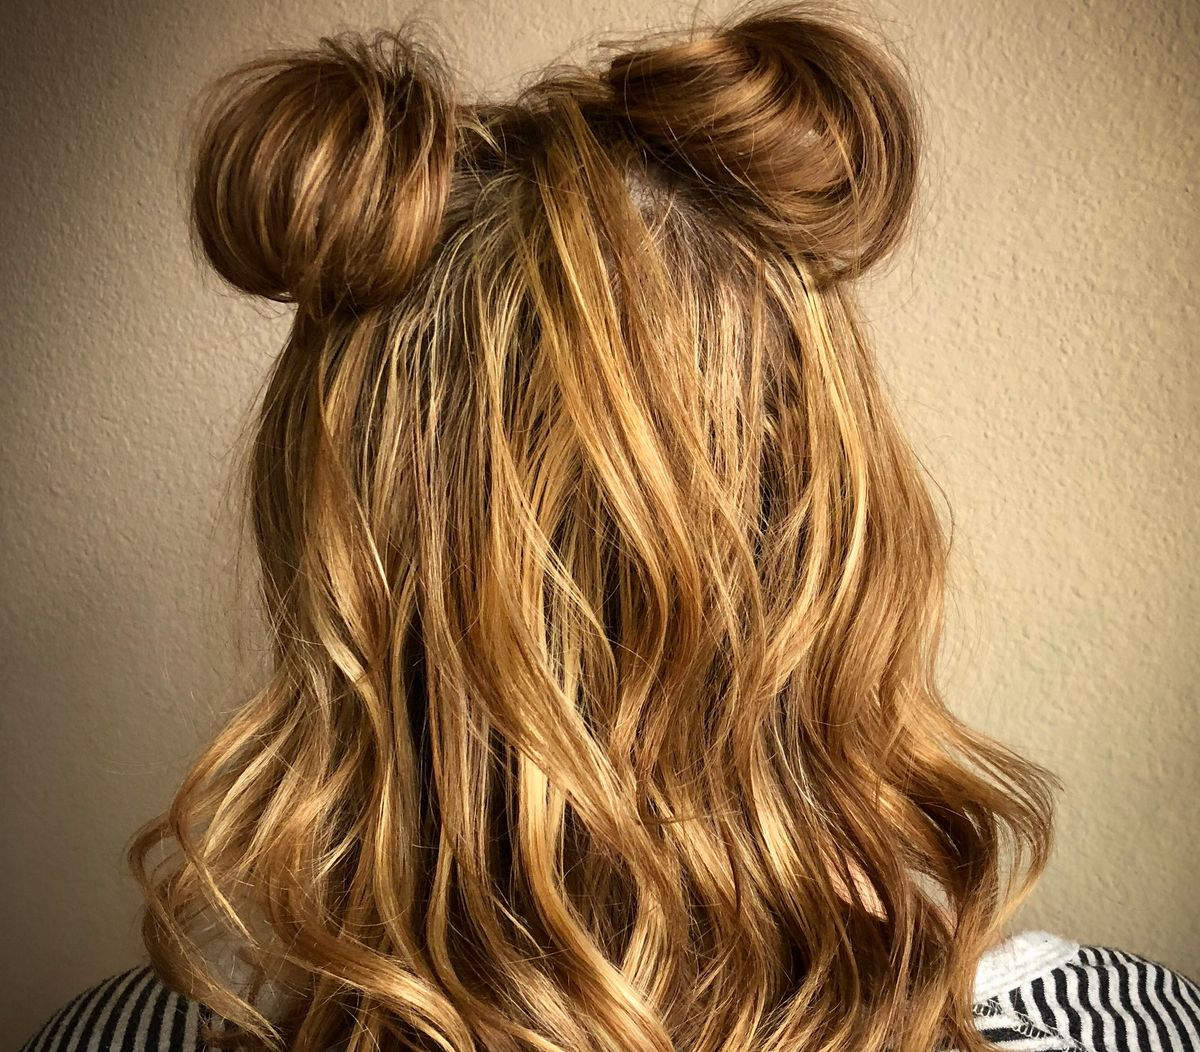 5 Easy Hairstyles You Need To Try For The Spring